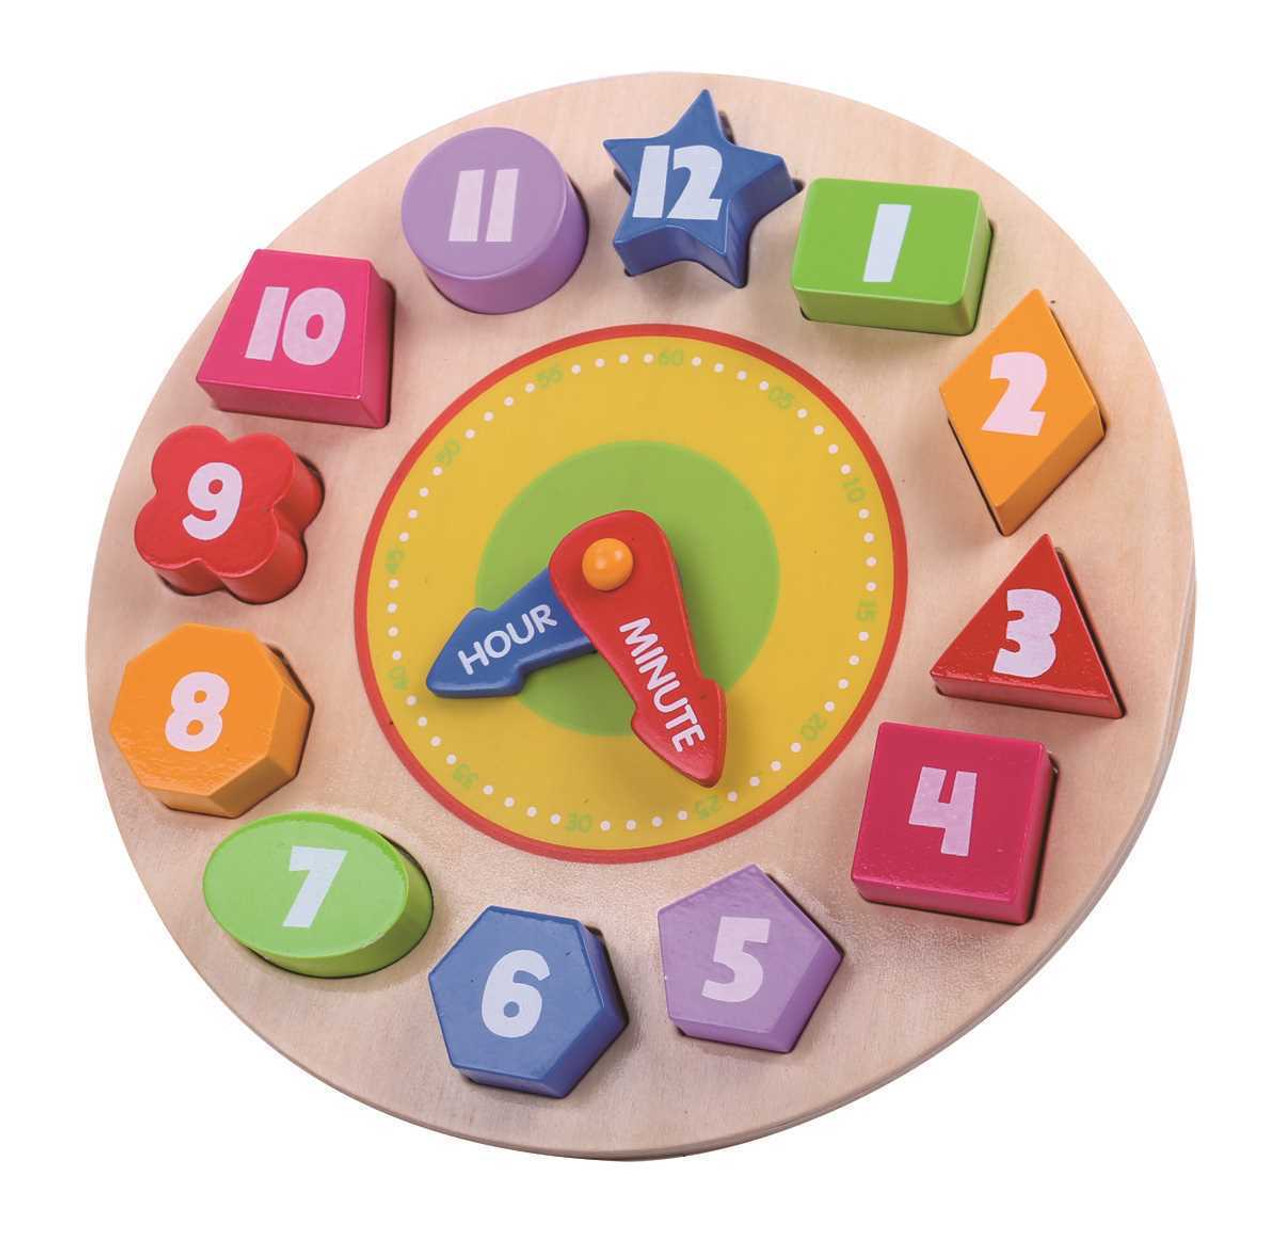 Tooky Toy Wooden Clock Puzzle